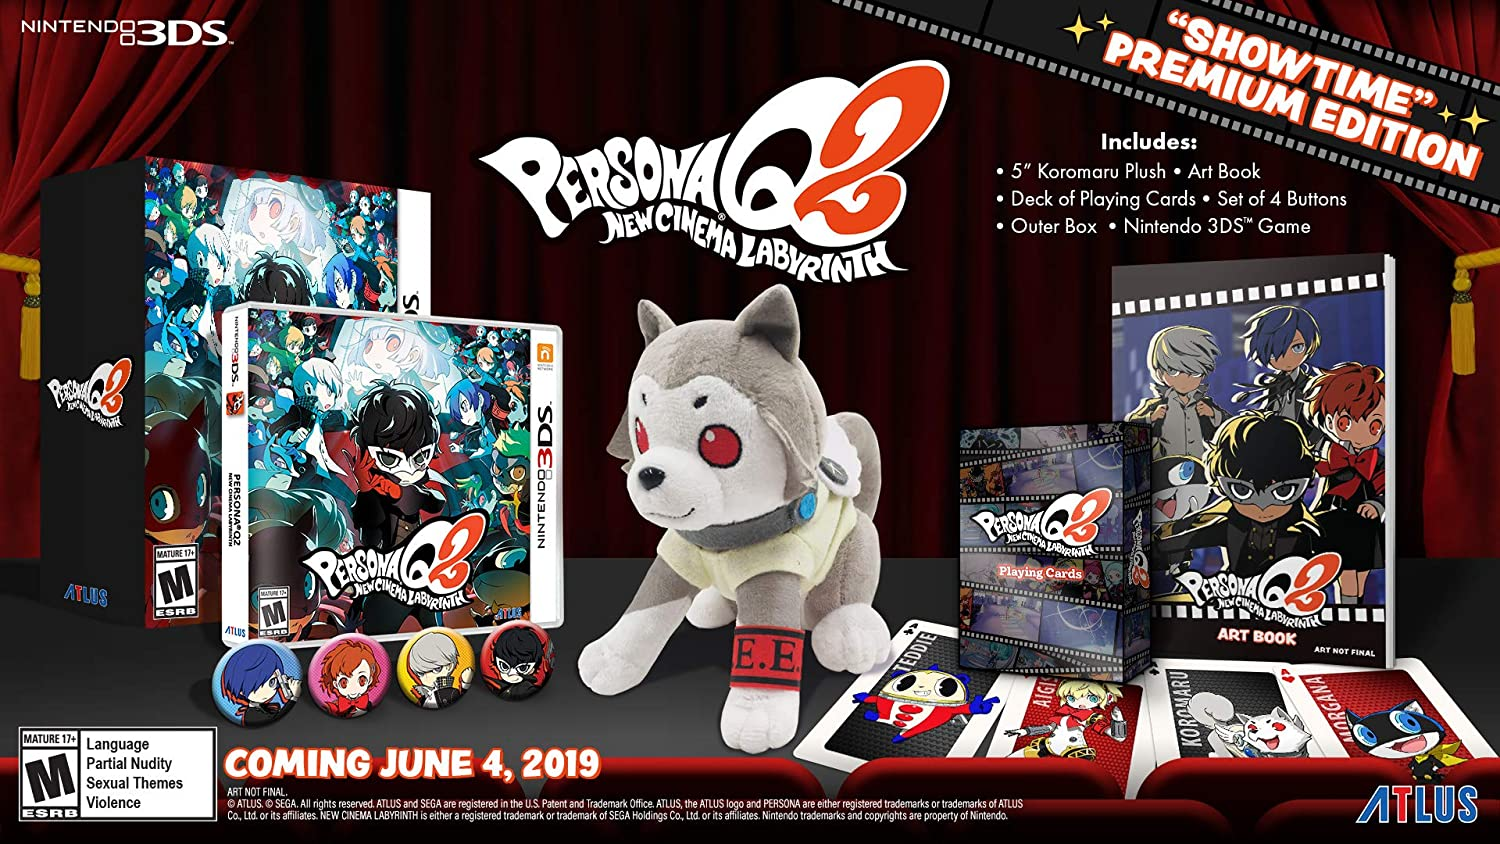 Persona Q2: New Cinema Labyrinth Launch Edition - Nintendo 3